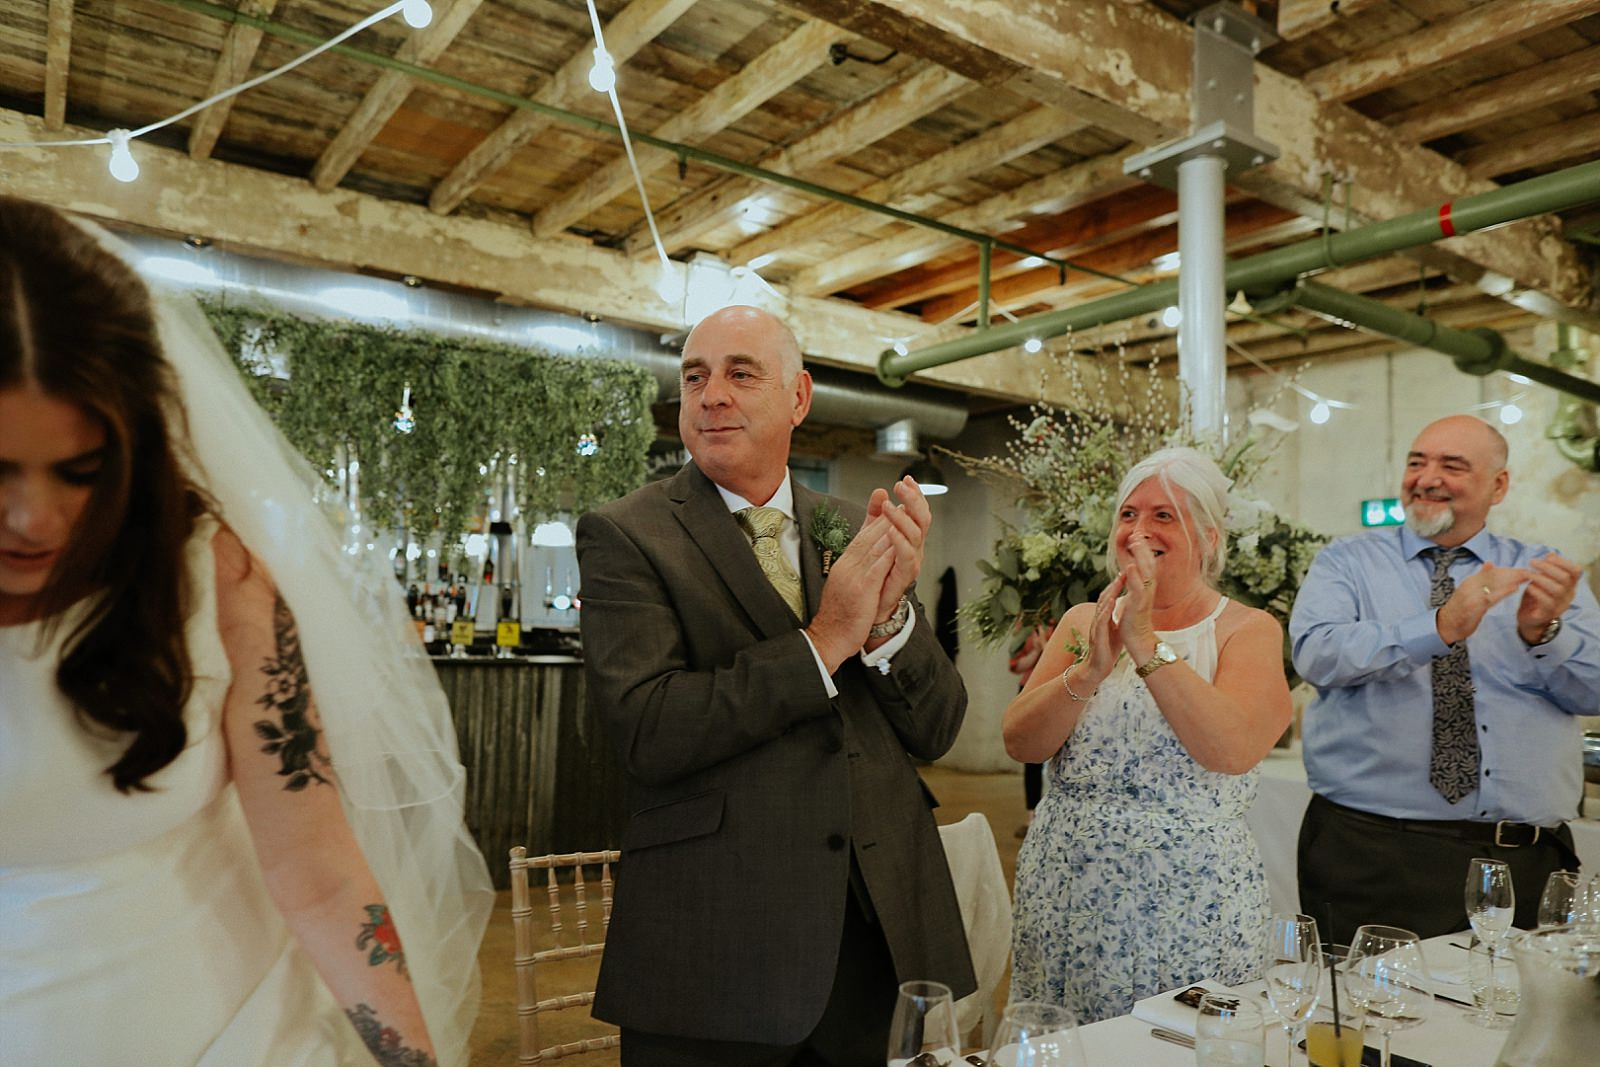 clapping father of the bride